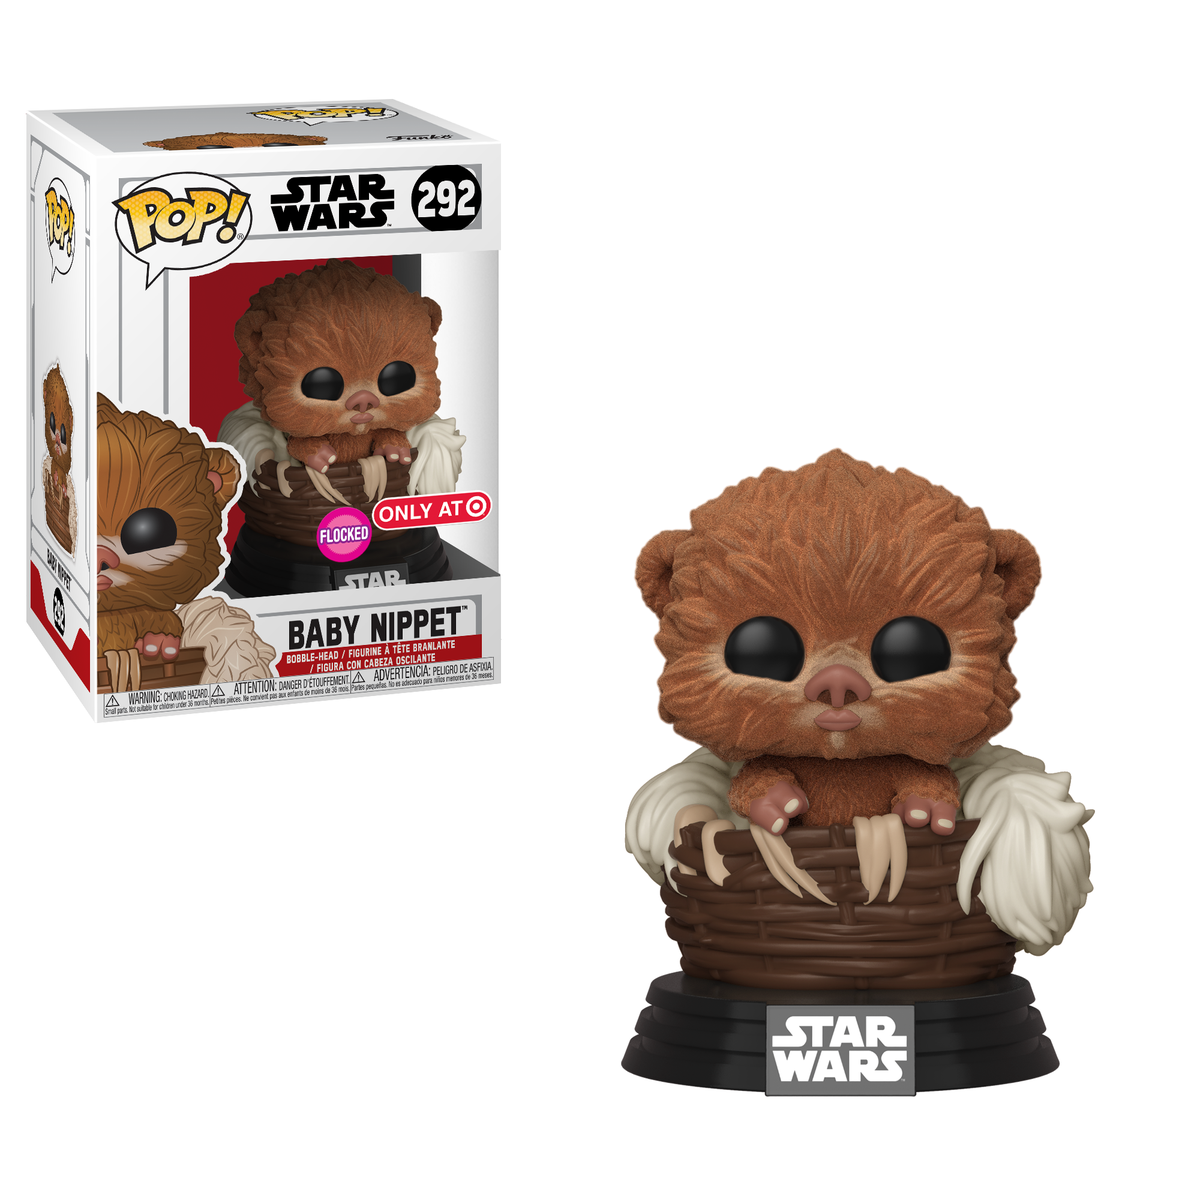 RT & follow @OriginalFunko for the chance to win a @Target exclusive FLOCKED Baby Nippet Pop!